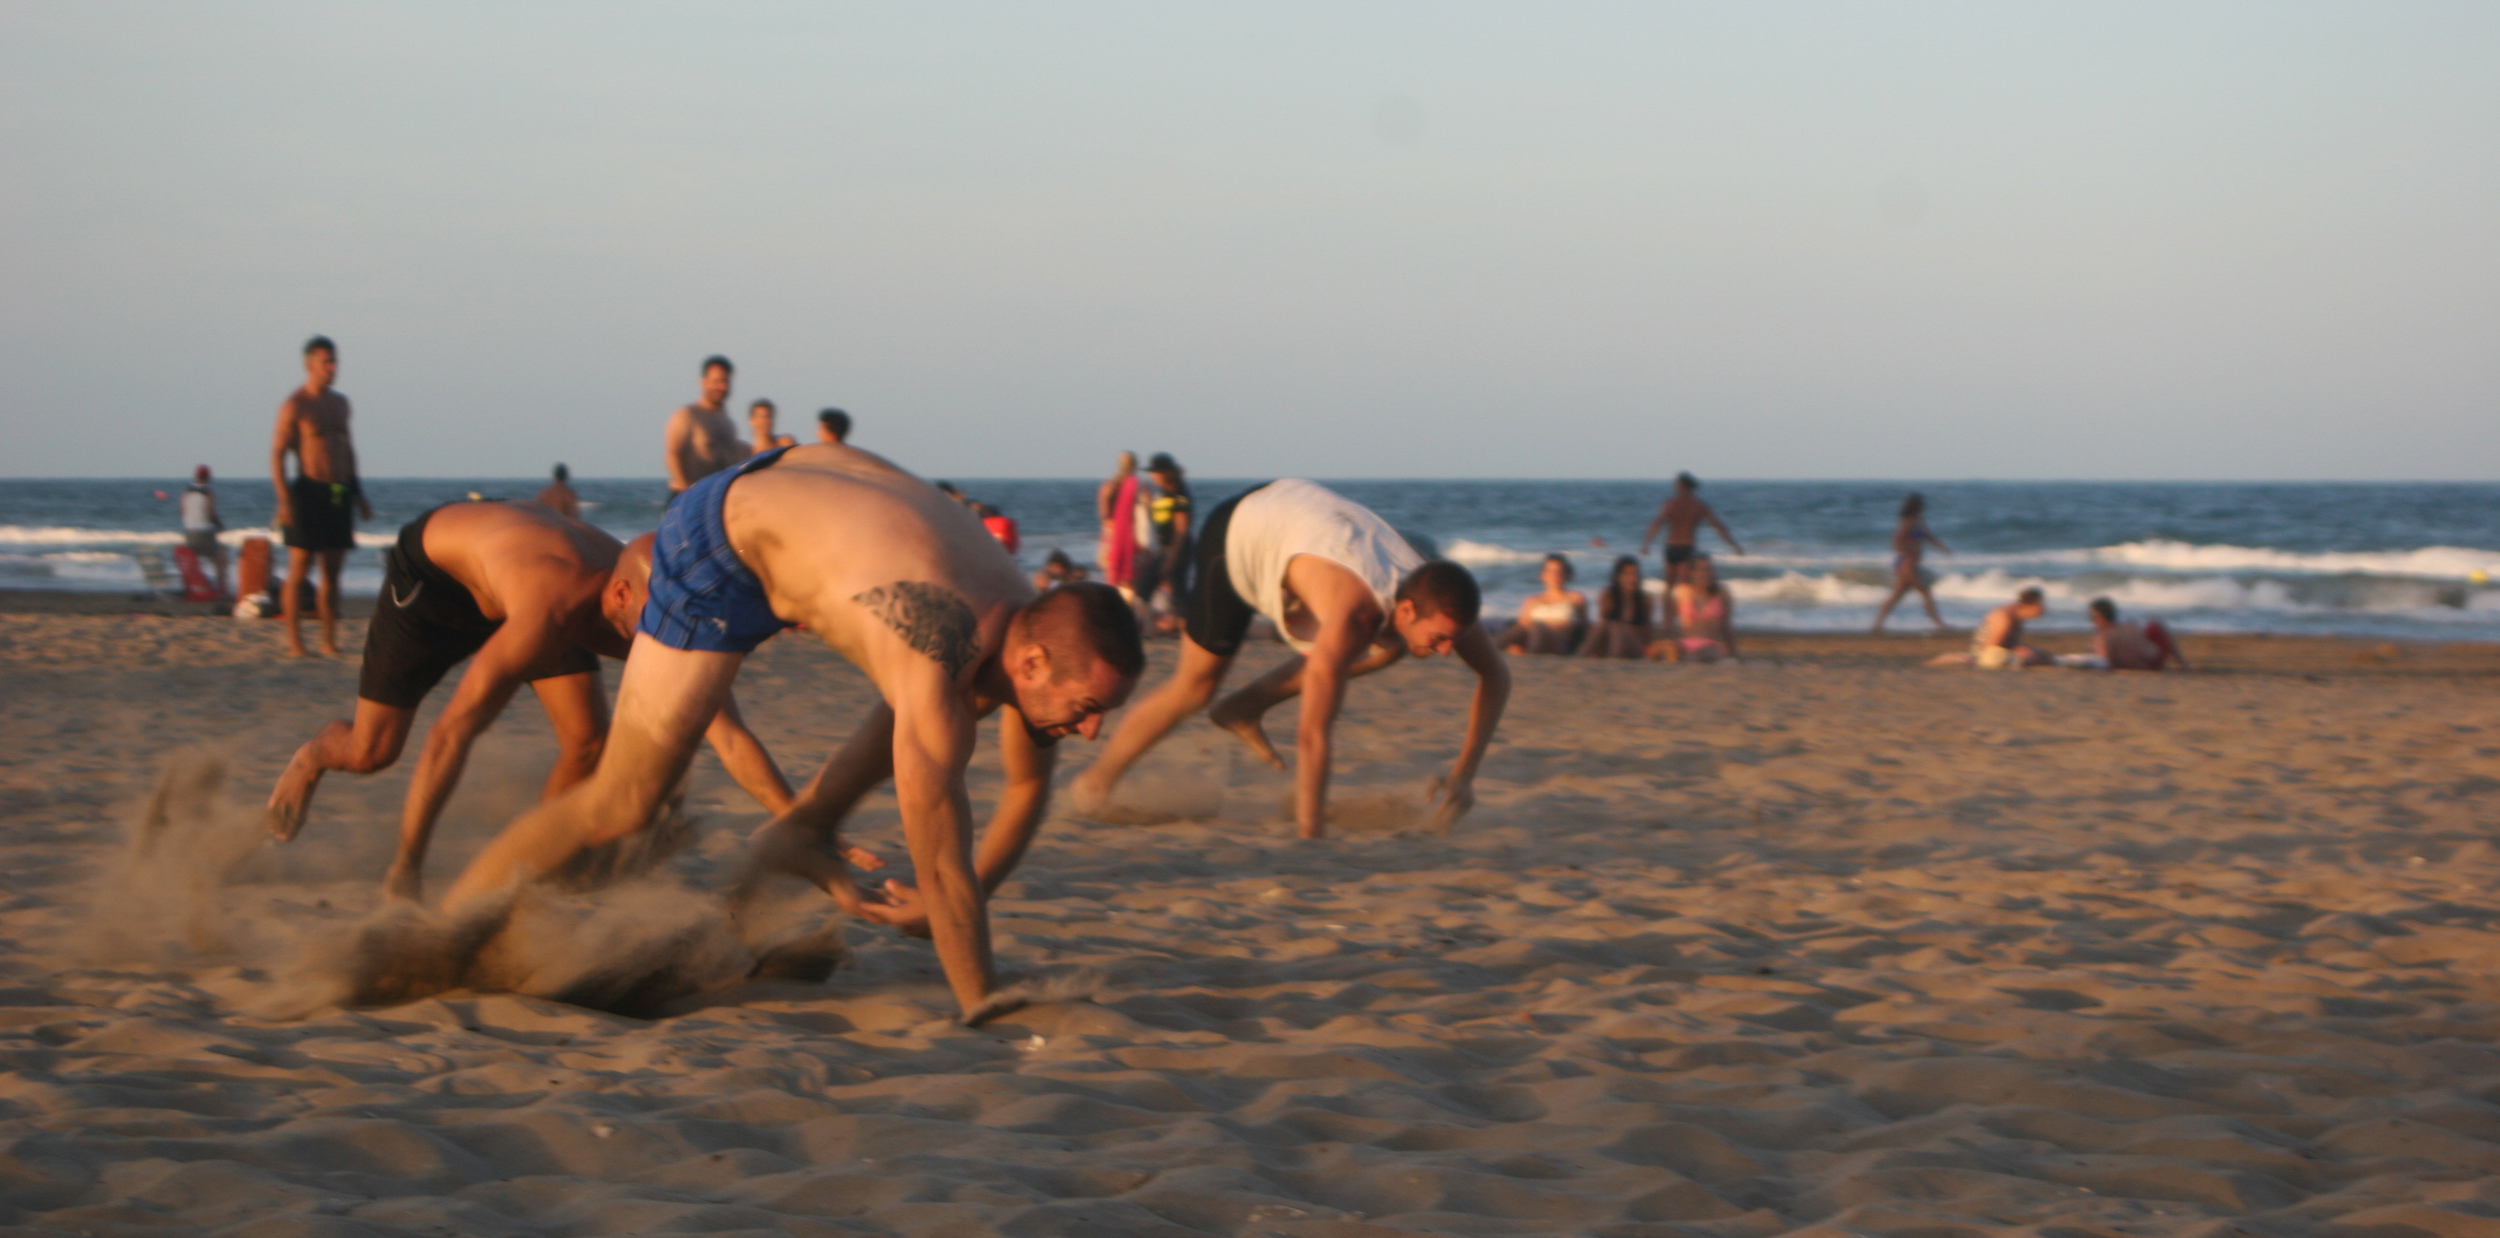 Full_CrossFit_Beach_Wod_V2_2015-3.jpg